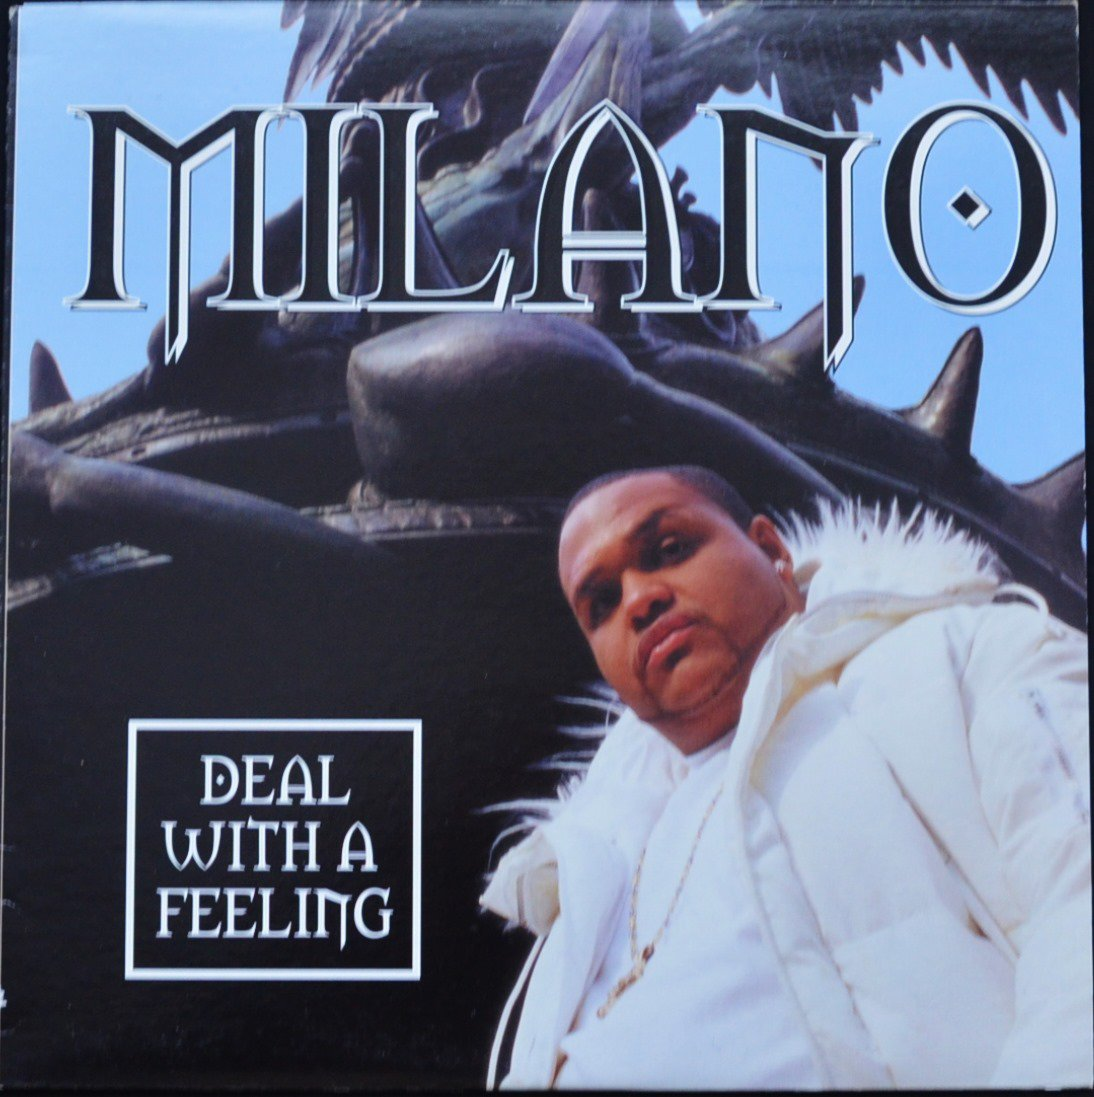 MILANO / DEAL WITH A FEELING (PROD BY SHOW) / REP FOR THE SLUMS (PROD BY AHMED) (12